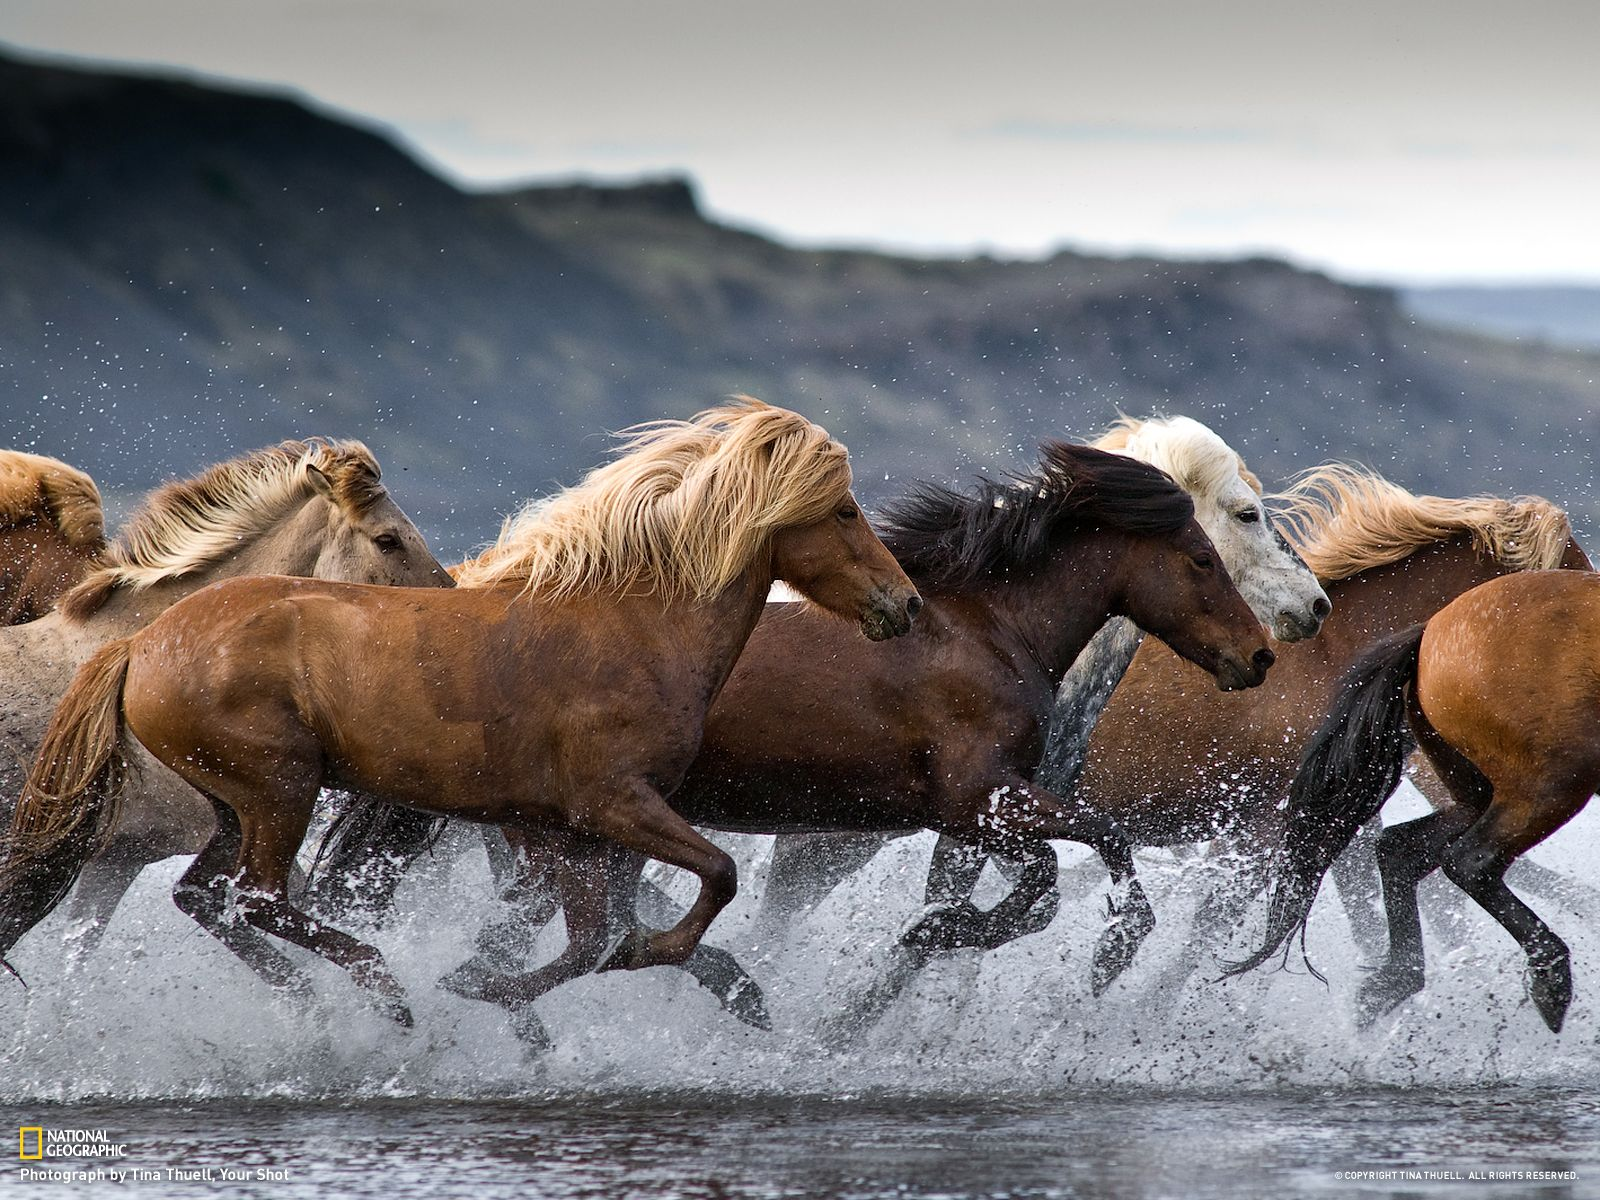 Wonderful Wallpaper Horse National Geographic - d9d3a58781f4f7940778fcff905fa2dc  Best Photo Reference_355749.jpg